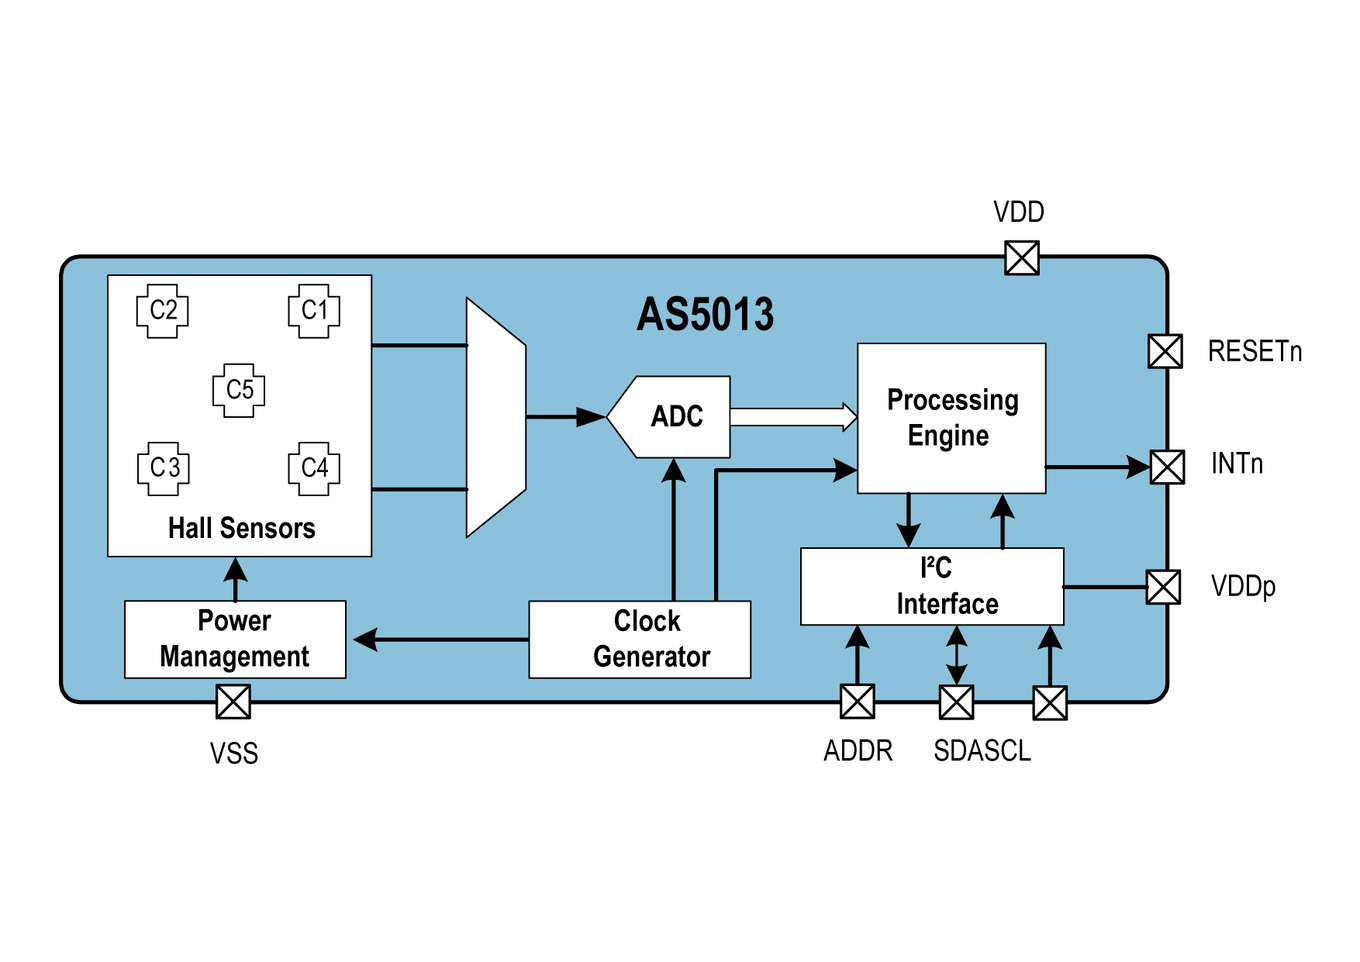 AS5013 Block Diagram